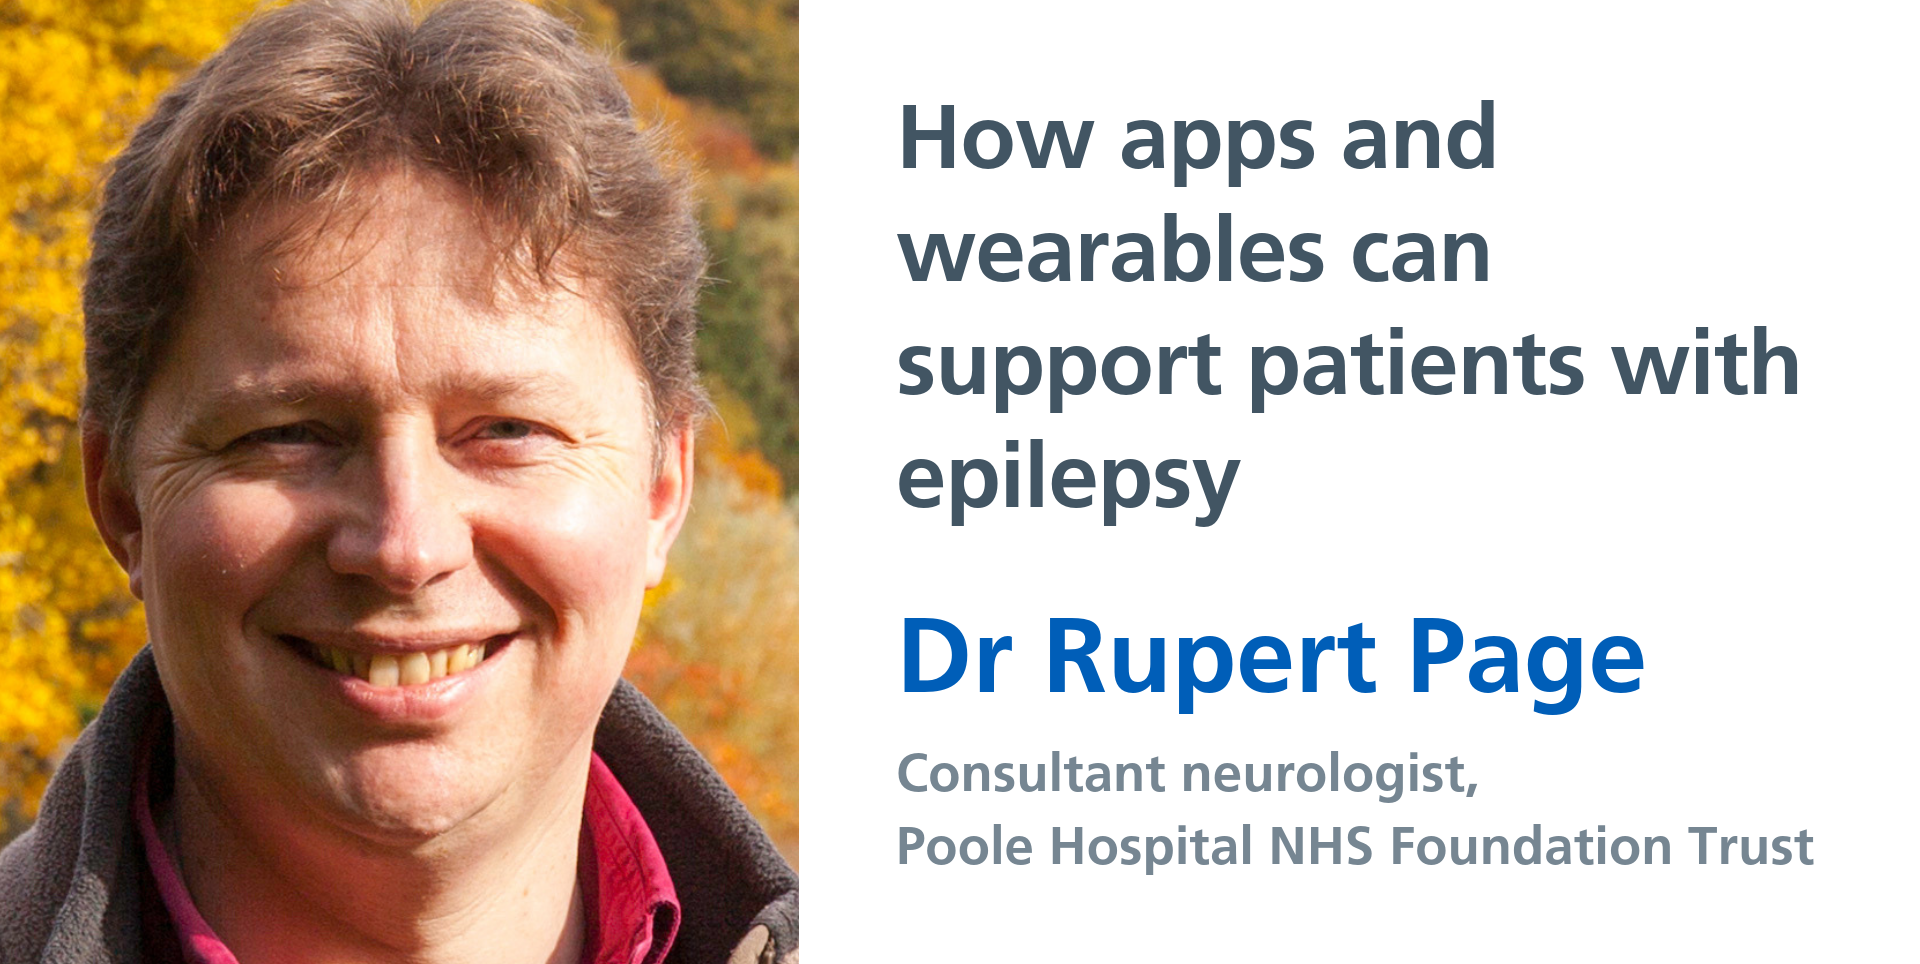 Consultant neurologist Dr Rupert Page shares his views on the use of apps and wearables to support patients with epilepsy